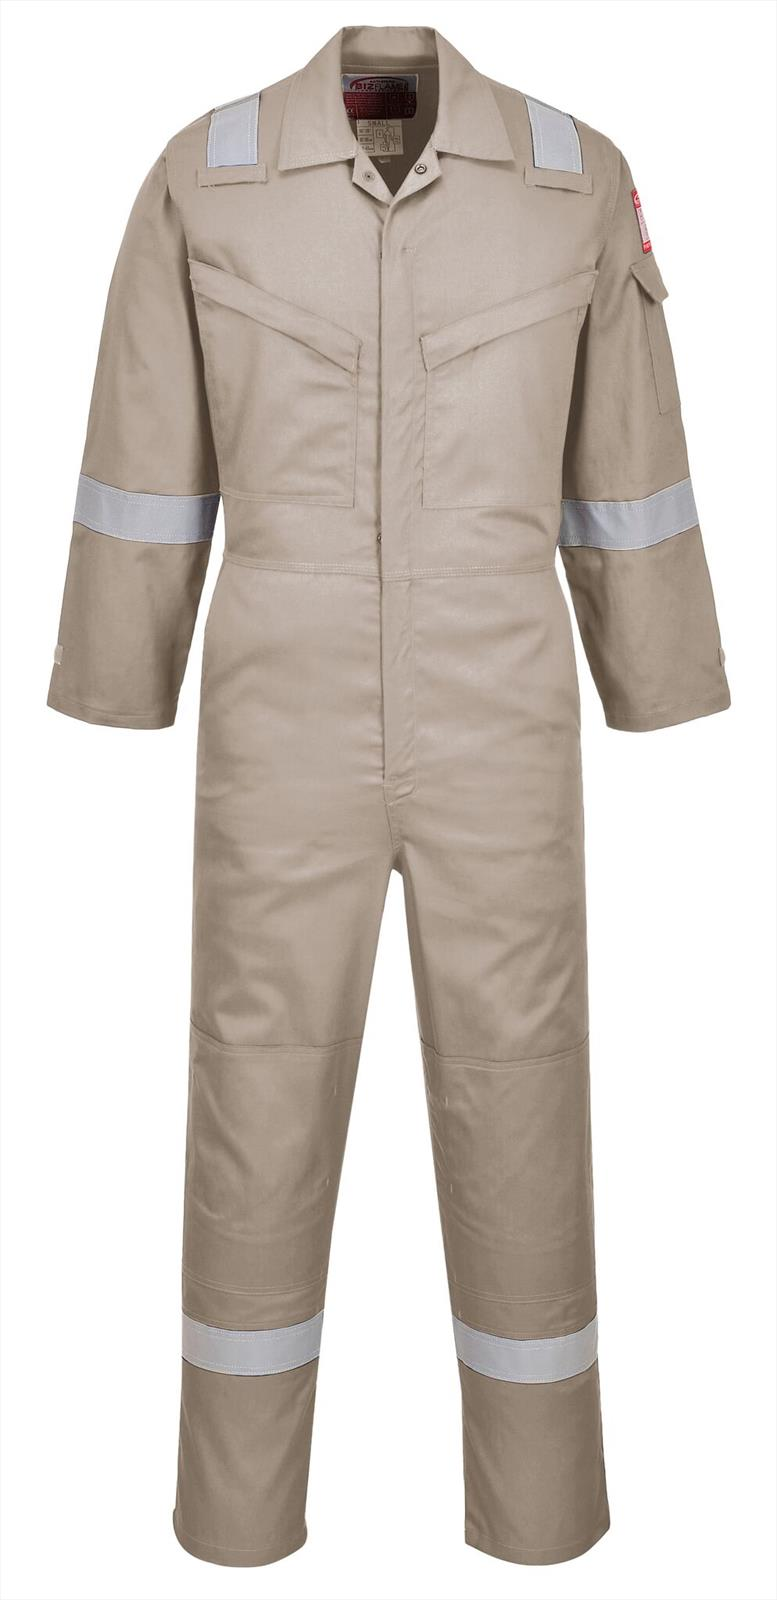 Cheap Fire Retardant Clothing >> Portwest BizFlame Flame Resistant Anti-Static Lightweight ...